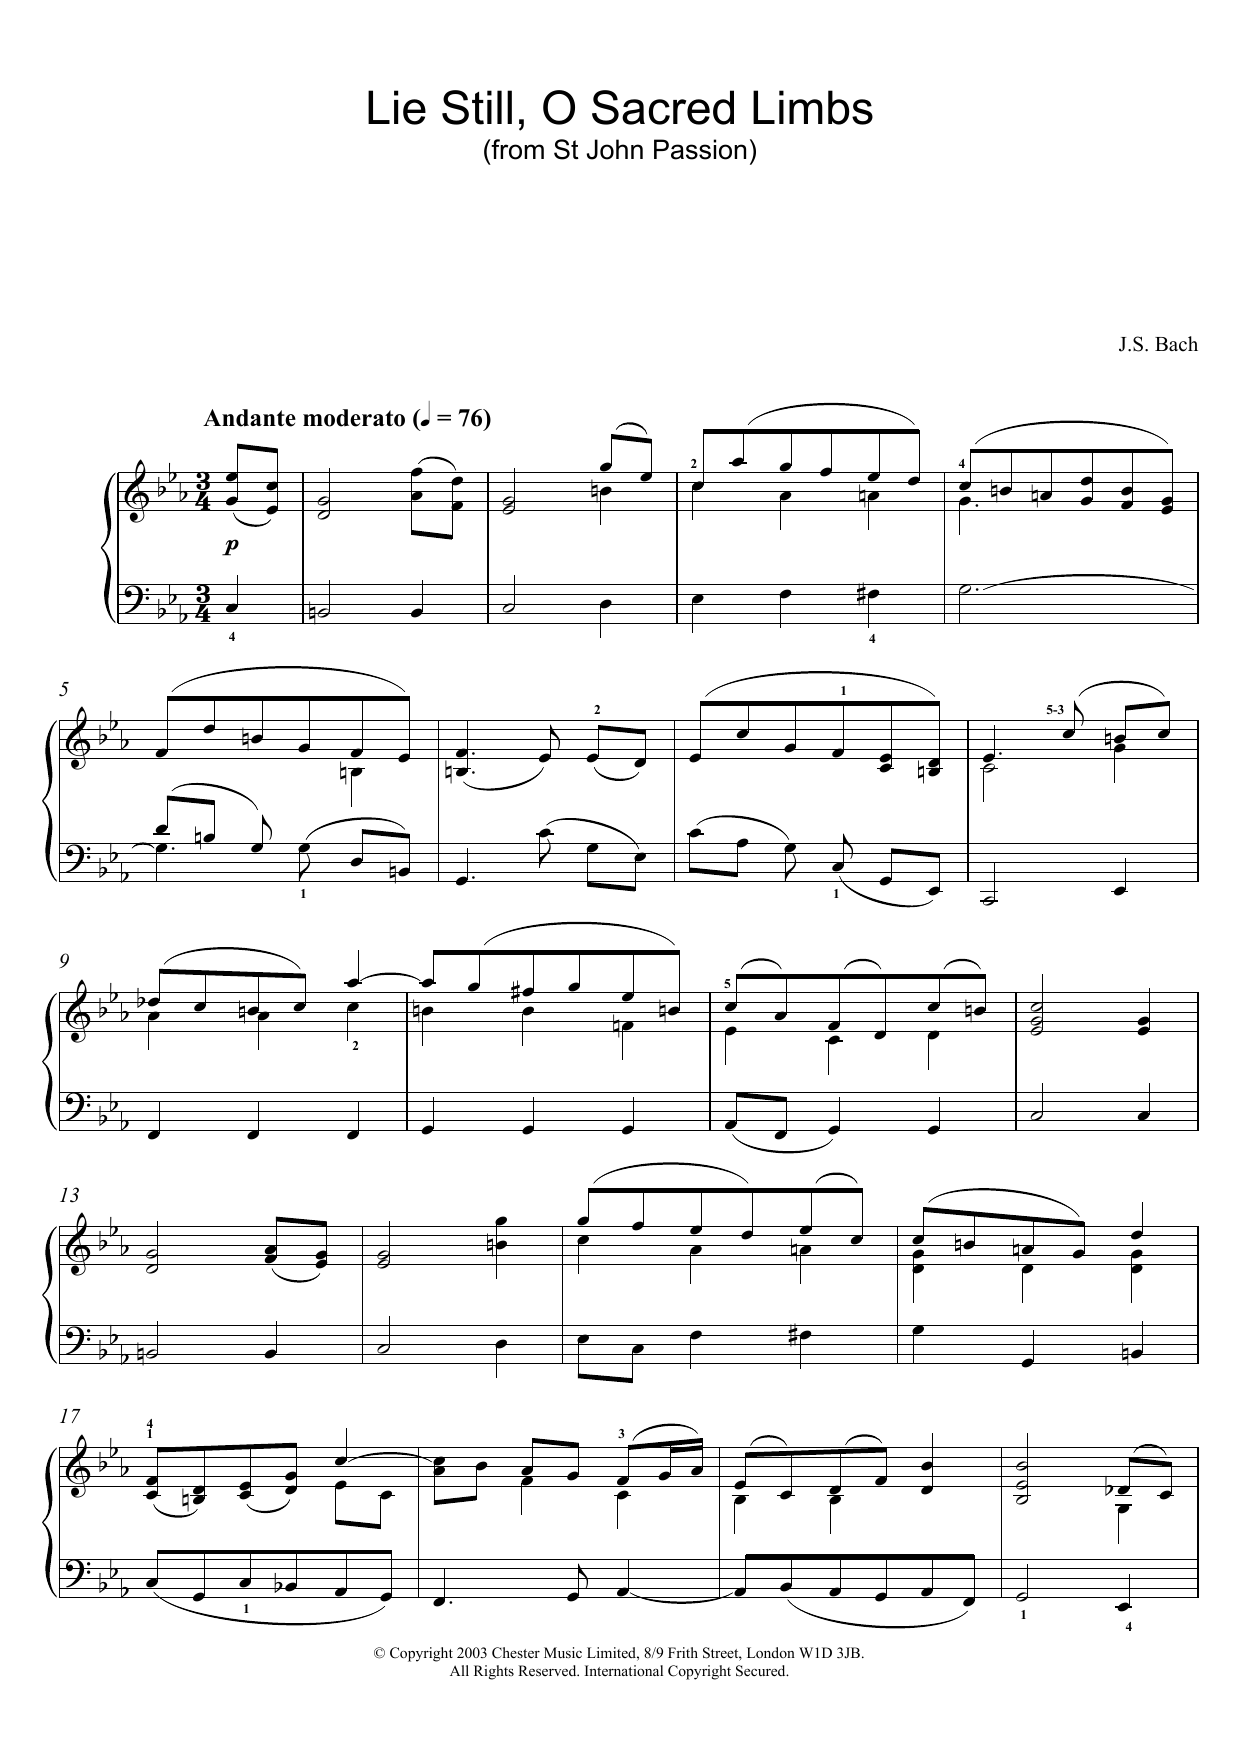 J.S. Bach Lie Still, O Sacred Limbs (from St John Passion) sheet music preview music notes and score for Piano including 2 page(s)